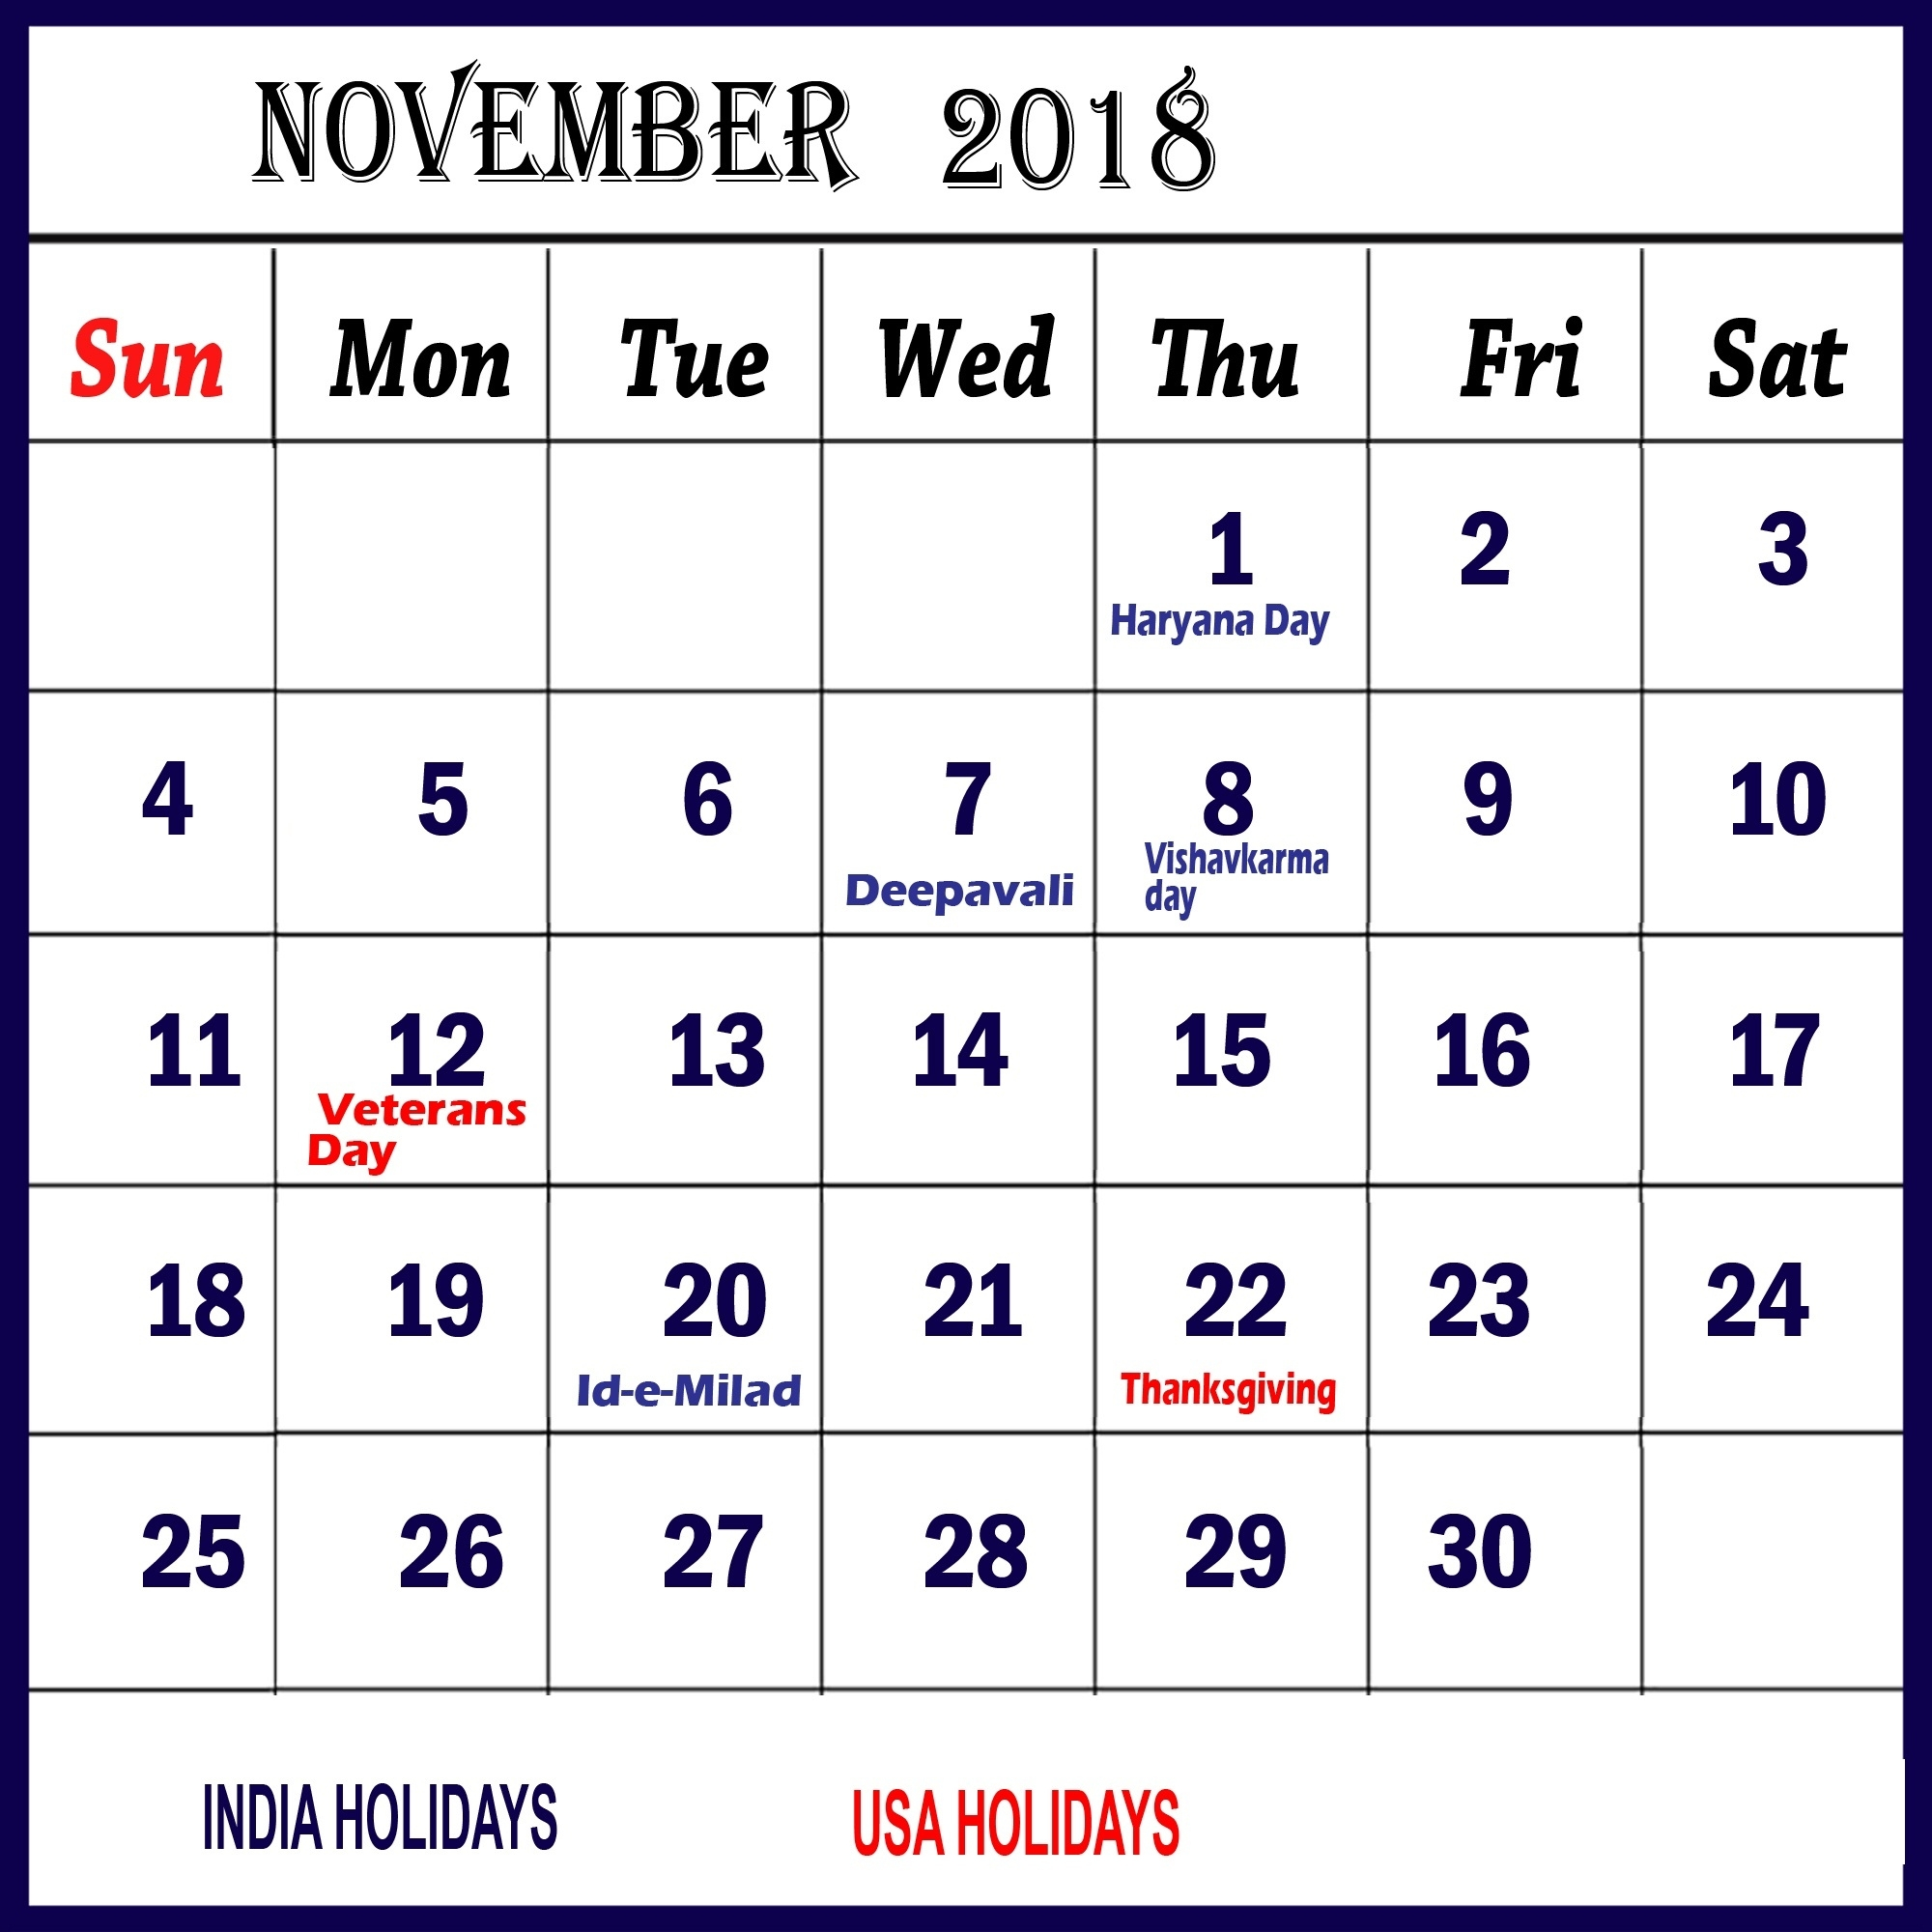 November-2018-Calendar-With-Holidays-And-Events - November Calendar Calendar With Holidays And Events